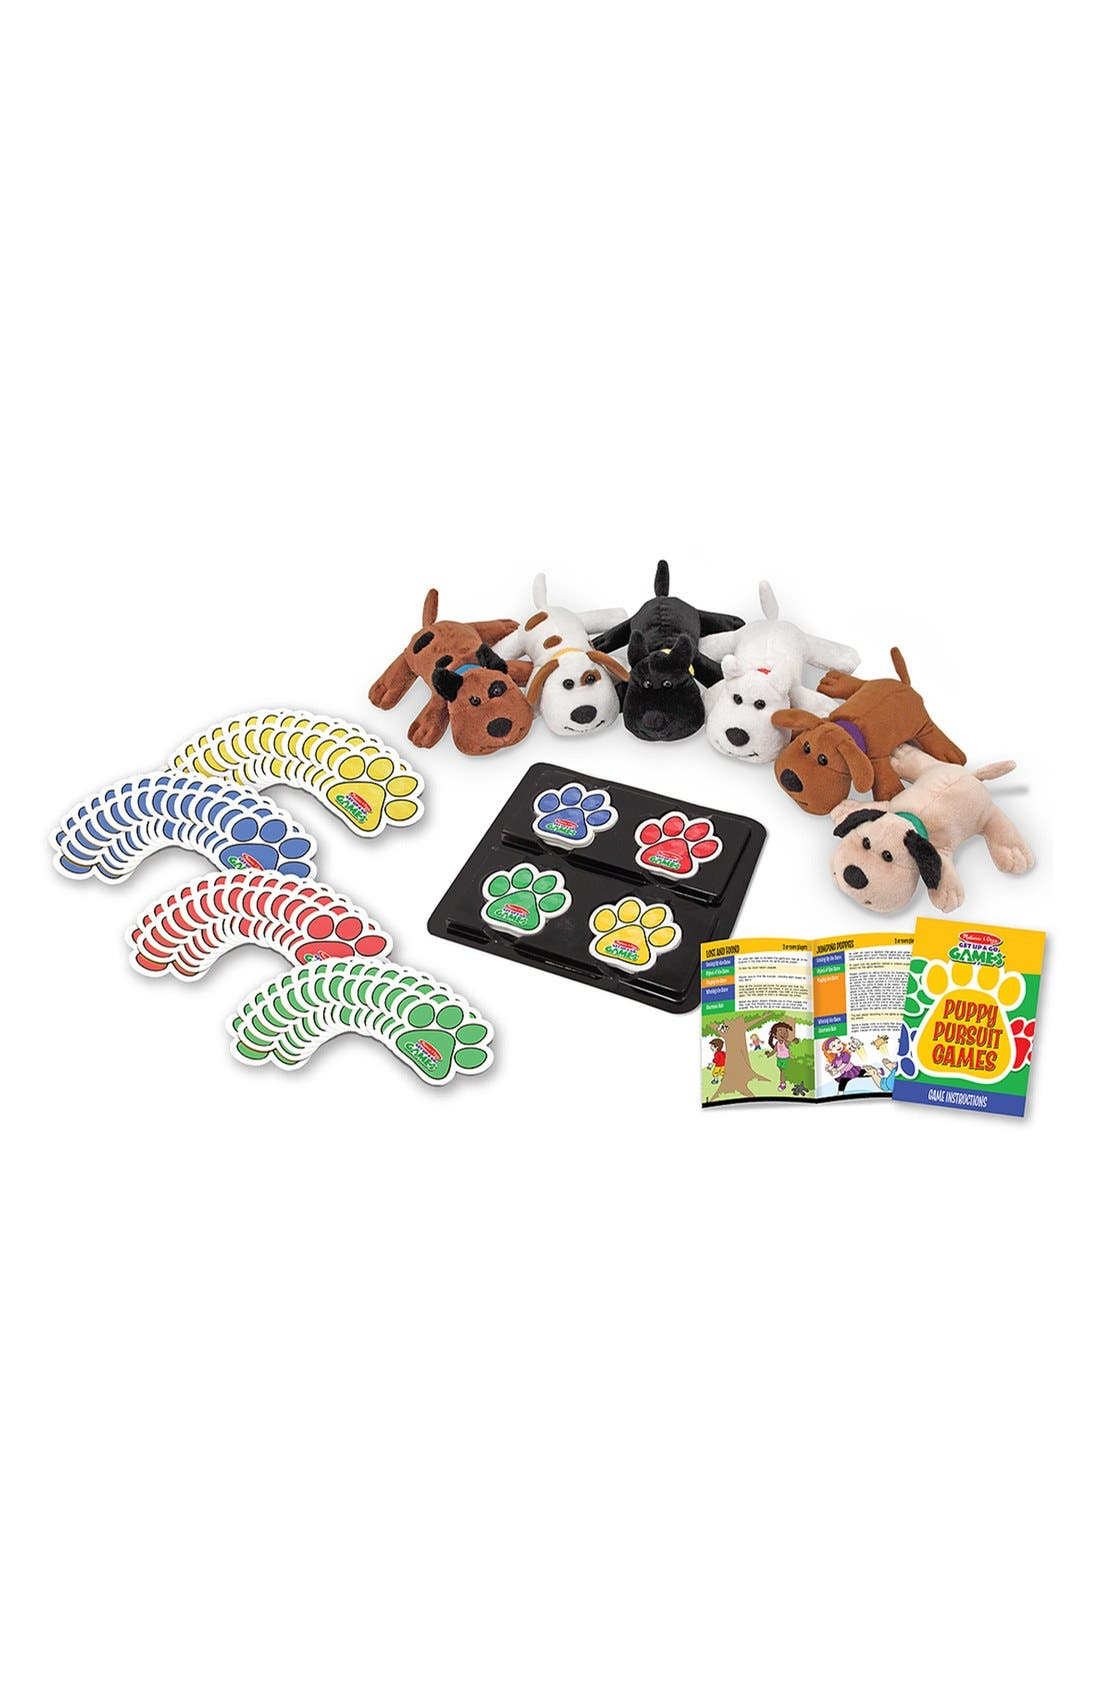 Melissa & Doug 'Puppy Pursuit' Game Set